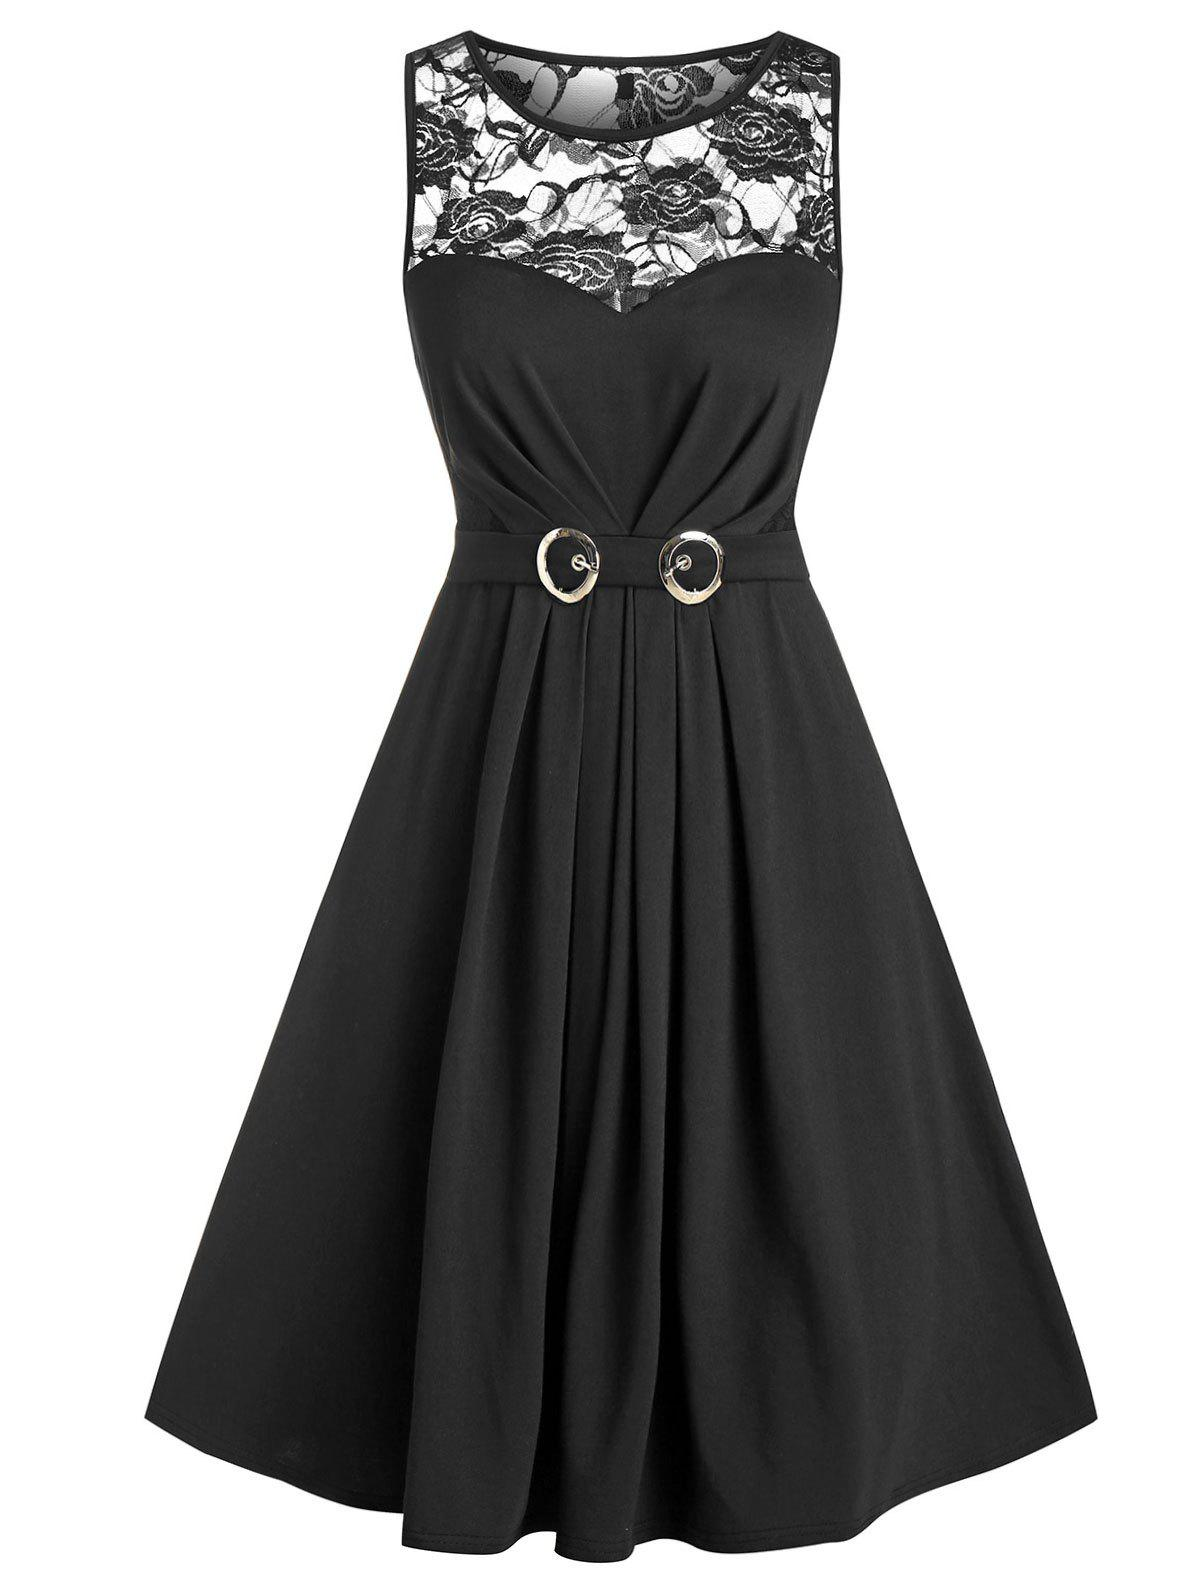 Sheer Lace Insert Belted Ruched Mini Sleeveless Dress - BLACK XL